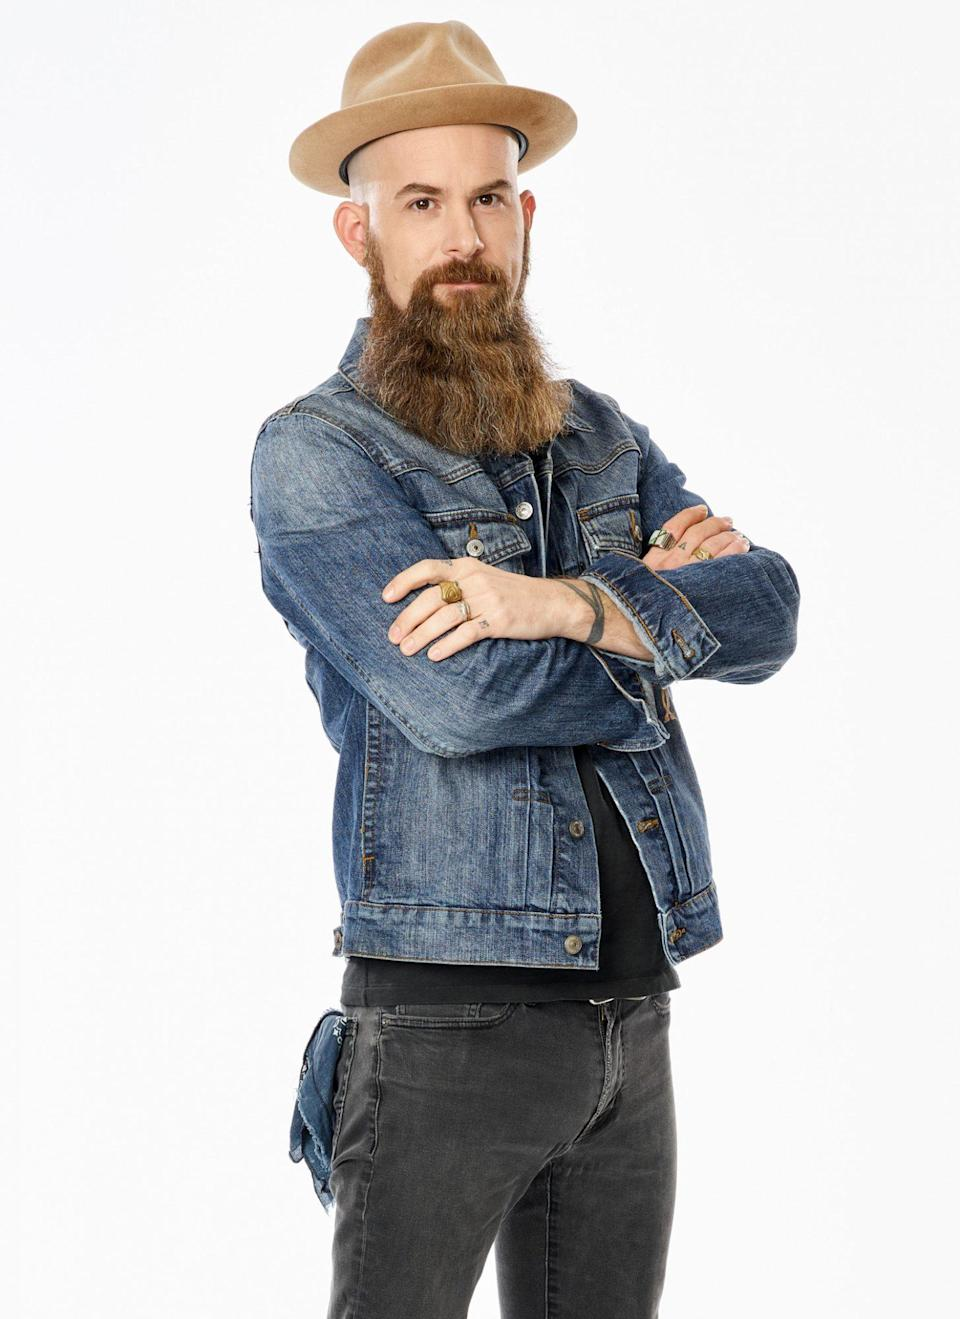 """<p><strong>Age:</strong> 39</p> <p><strong>Hometown:</strong> Waco, Texas</p> <p><strong>Resident:</strong> Waco, Texas</p> <p>Growing up, Konzelman's parents ran a Christian music studio, so it was only a matter of time before he started singing himself. He then followed his passion for music to college, where he studied audio engineering and met his wife Amanda. The couple now have two kids and have moved 11 times over the past 17 years, always immersing themselves in the local music scene wherever they go. Due to his nomadic lifestyle, Konzelman has worked various jobs from teaching martial arts to creating essential oils for men's beards and considers himself a jack-of-all-trades. Konzelman is ready for his next adventure on <a href=""""http://people.com/tag/the-voice"""" rel=""""nofollow noopener"""" target=""""_blank"""" data-ylk=""""slk:The Voice"""" class=""""link rapid-noclick-resp""""><em>The Voice</em></a> and hopes to finally make music his full-time career. </p> <p>""""I am so honored that Blake turned his chair for me,"""" Konzelman says. """"I deeply respect his songwriting and long history in the music industry. I feel like he gets me and my artistry and is the perfect coach to push me even further toward my dreams!""""</p>"""